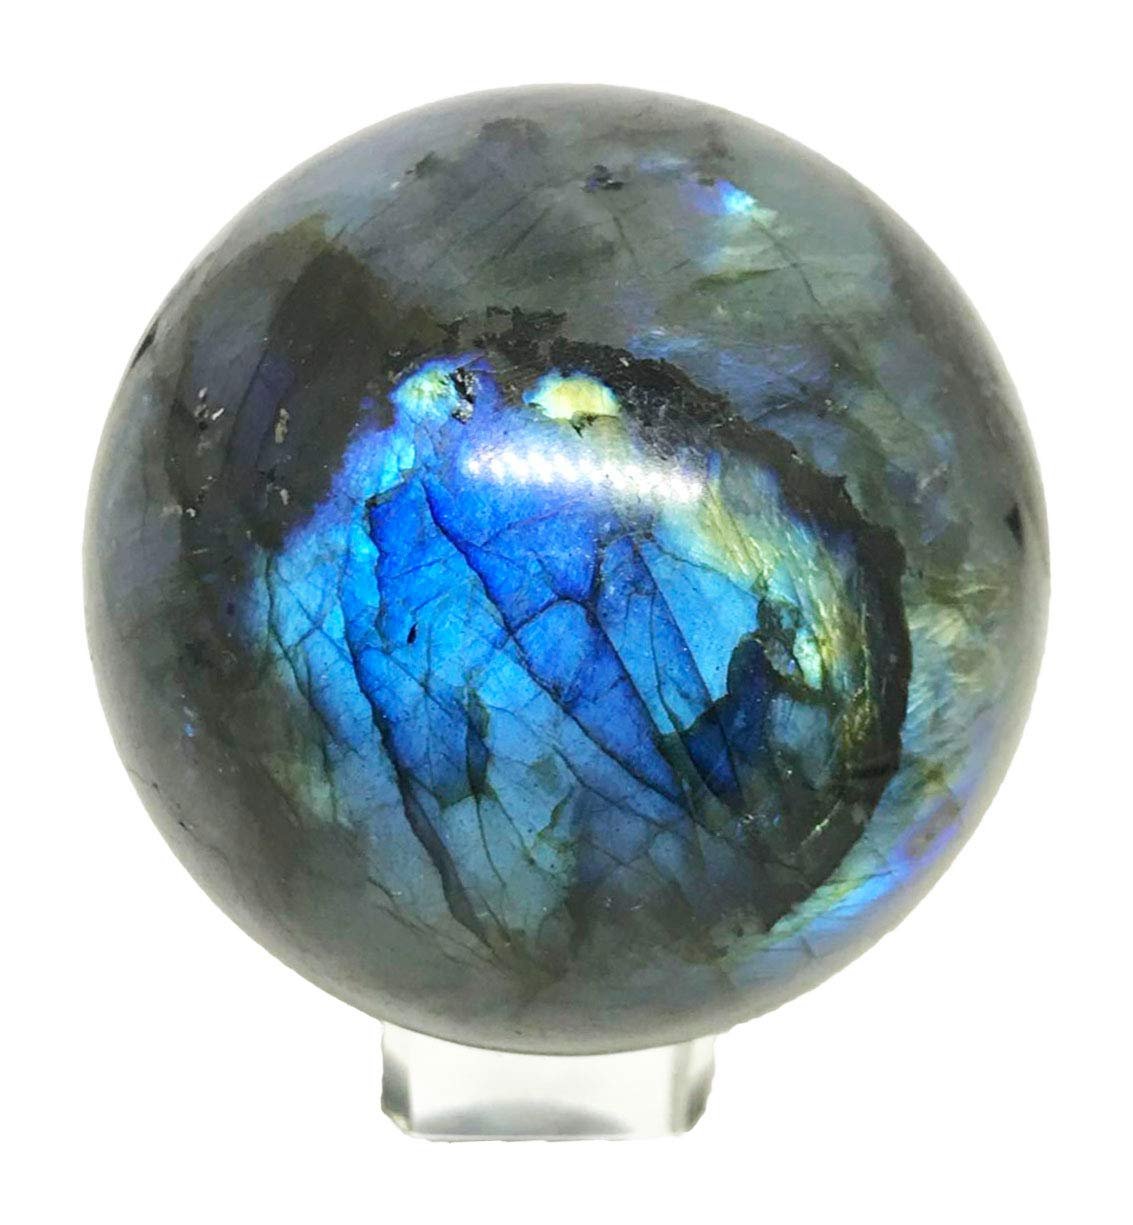 Yinglai 60-70mm Natural Blue Flashy Labradorite Spheres Balls Crystal Stone Healing Balls with Glass Stand by Yinglai